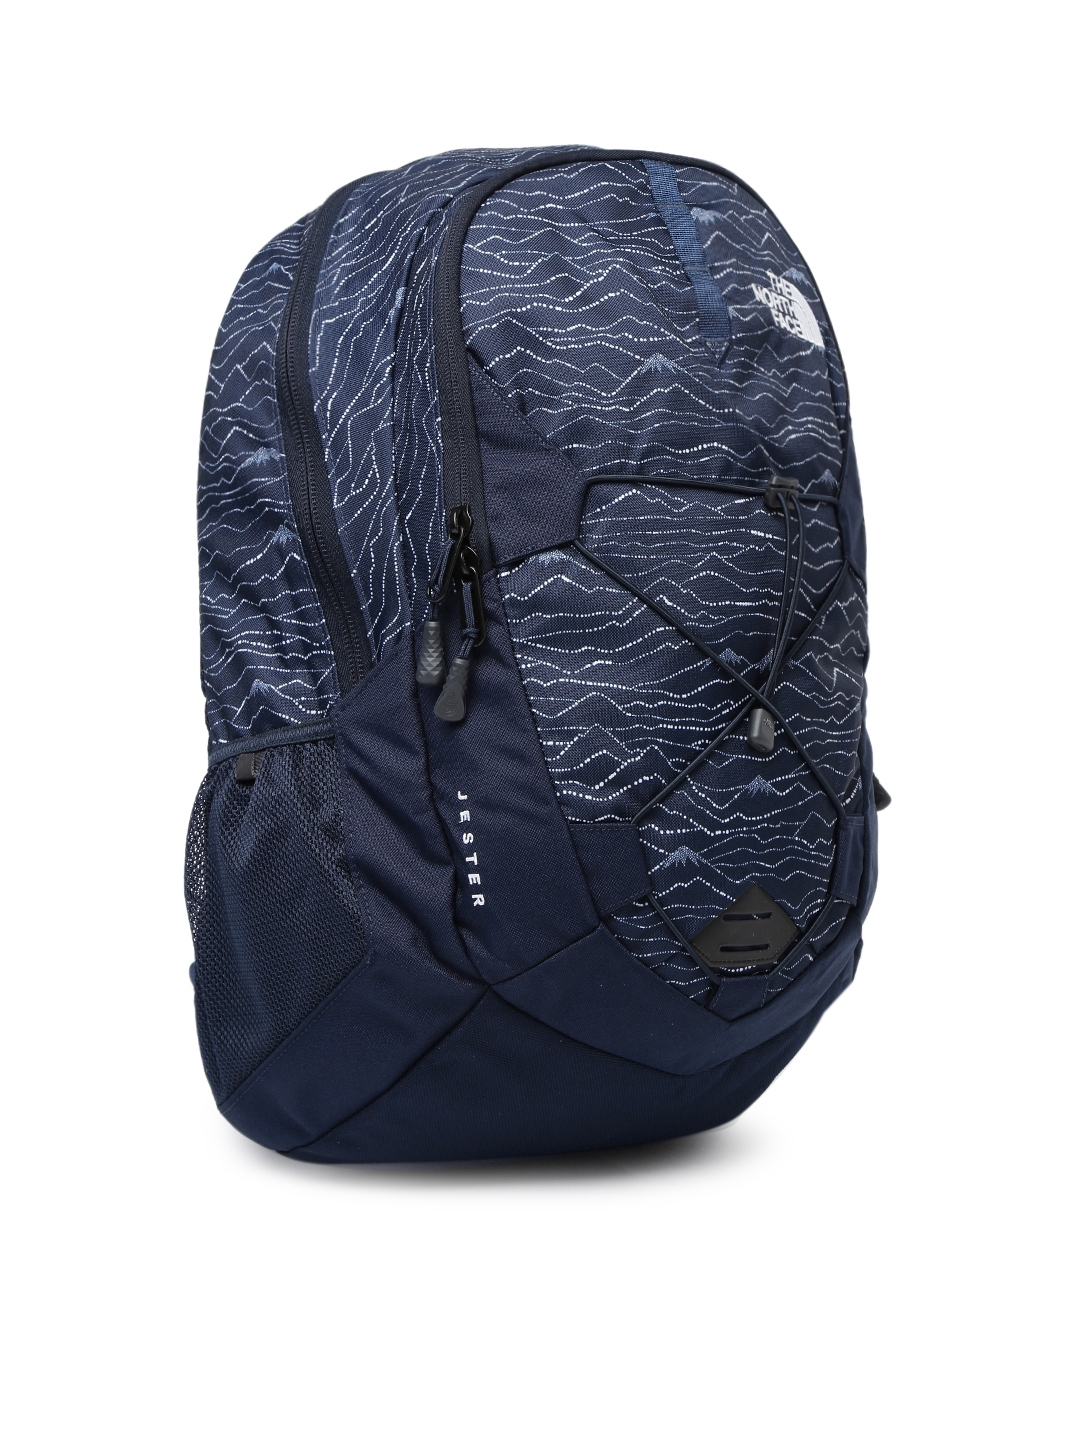 14d1e96c23 Buy The North Face Unisex Blue Jester Graphic Backpack - Backpacks ...